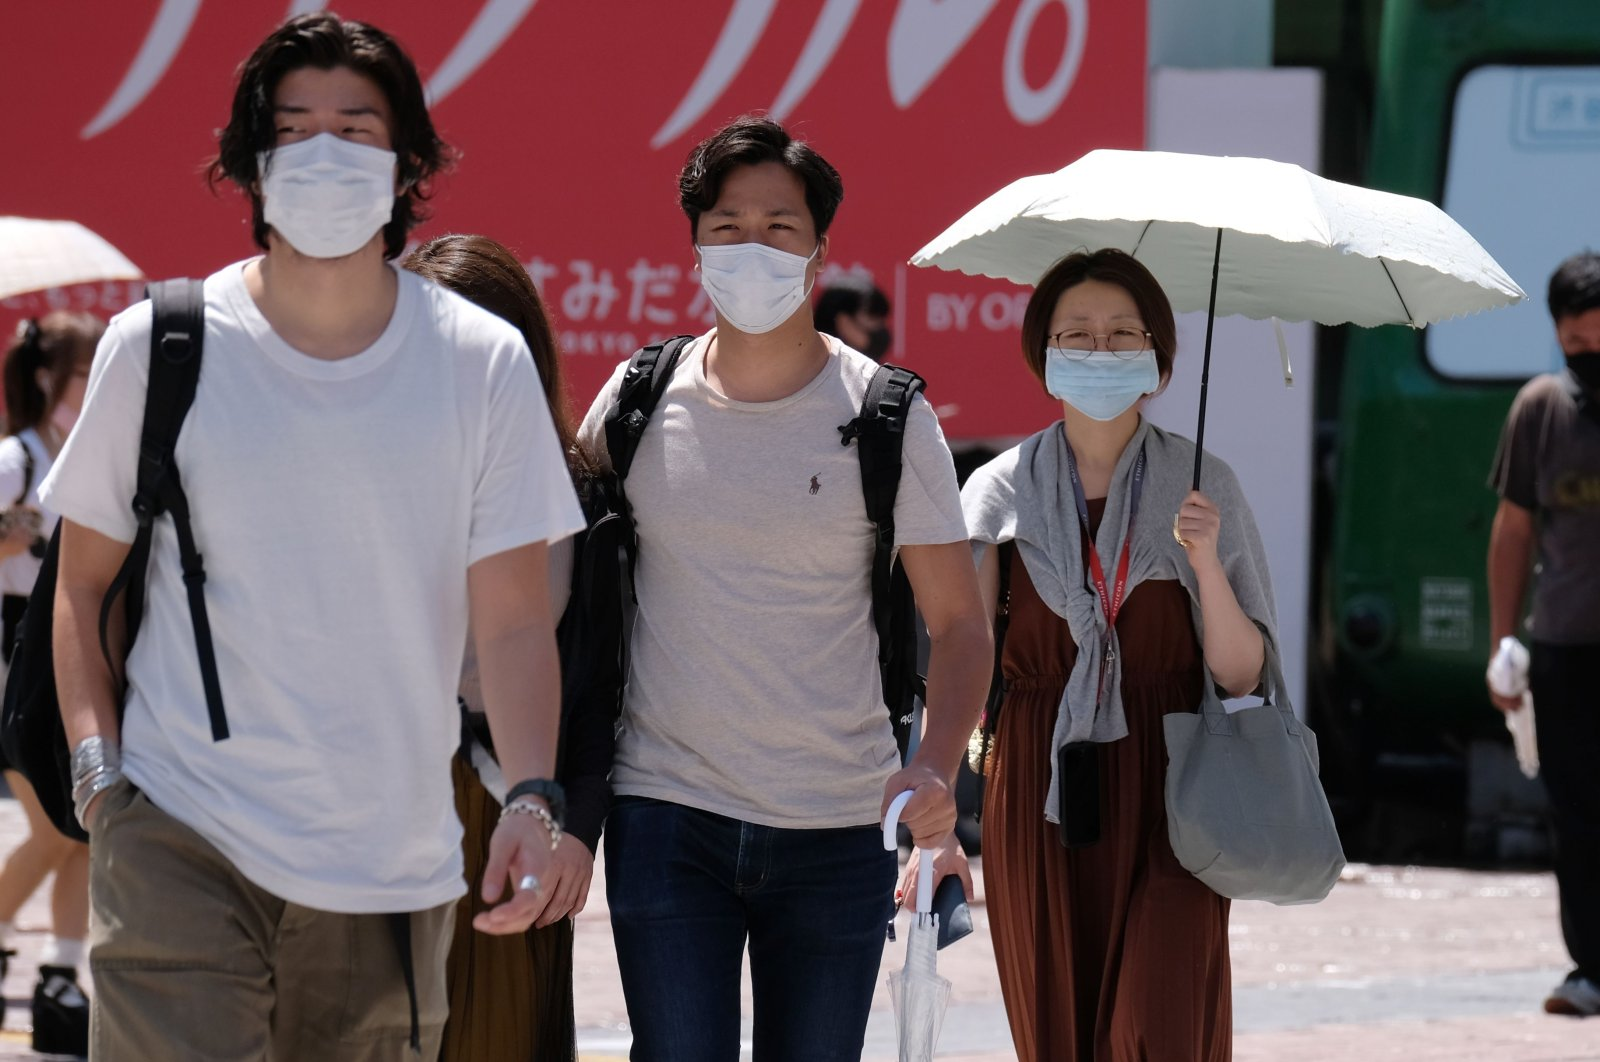 People wearing face masks walk across Shibuya Crossing in the Shibuya shopping and entertainment district in Tokyo, Japan, July 26, 2020. (AFP Photo)